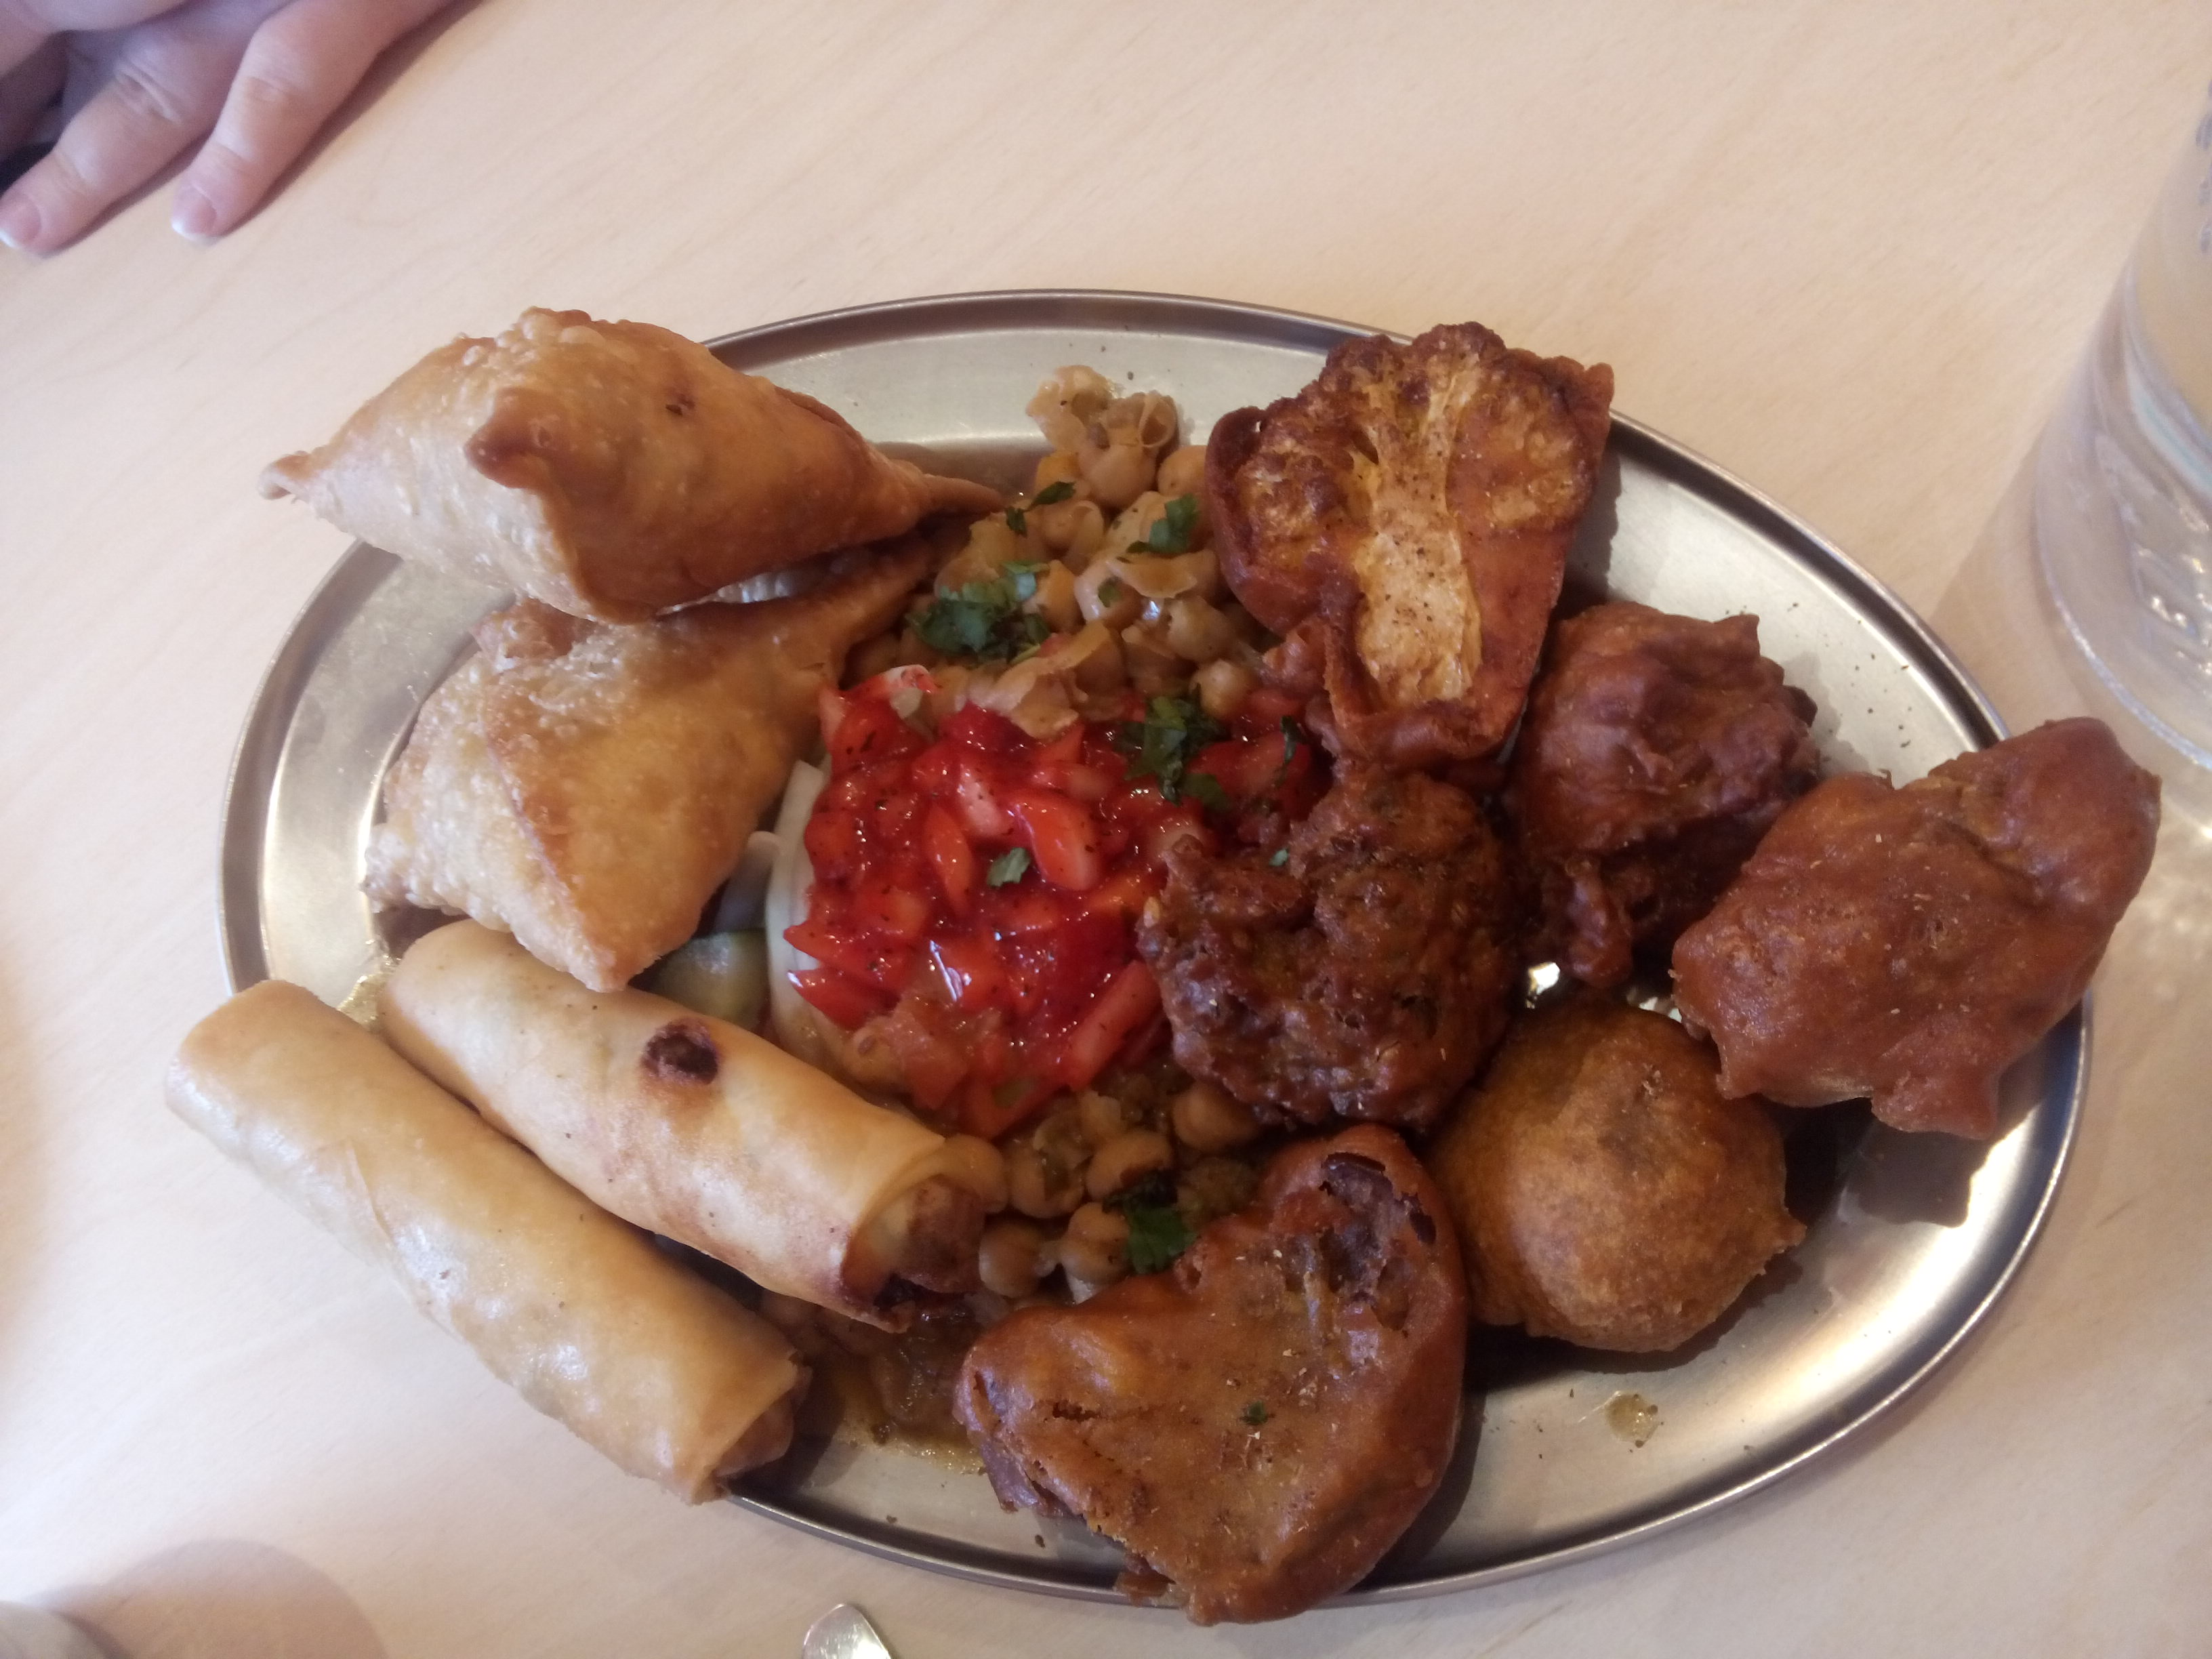 A plate full of various pakoras and spring rolls and stuff